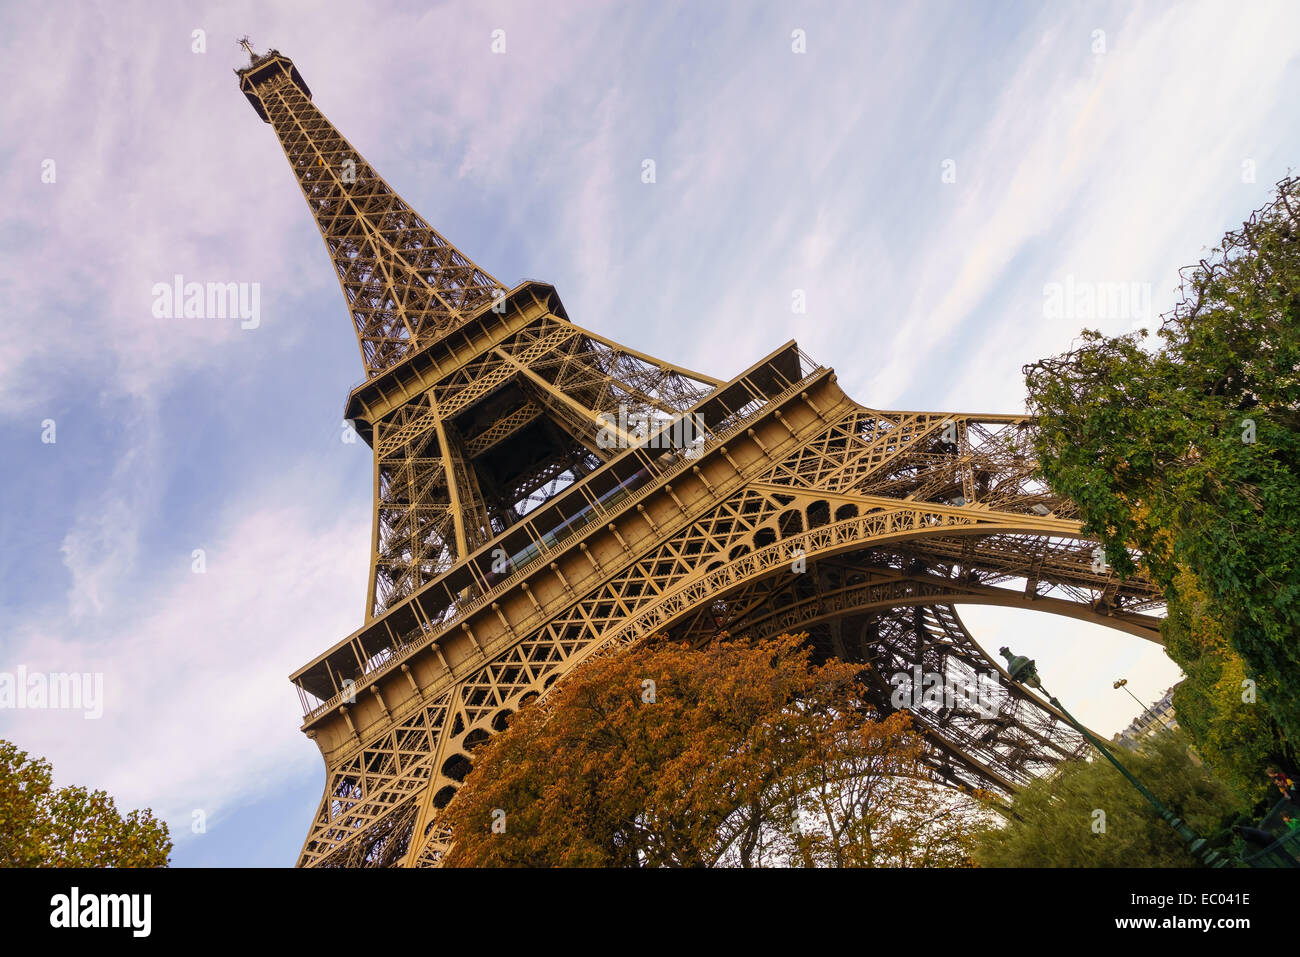 The Eiffel Tower in autumn. Paris, France. - Stock Image